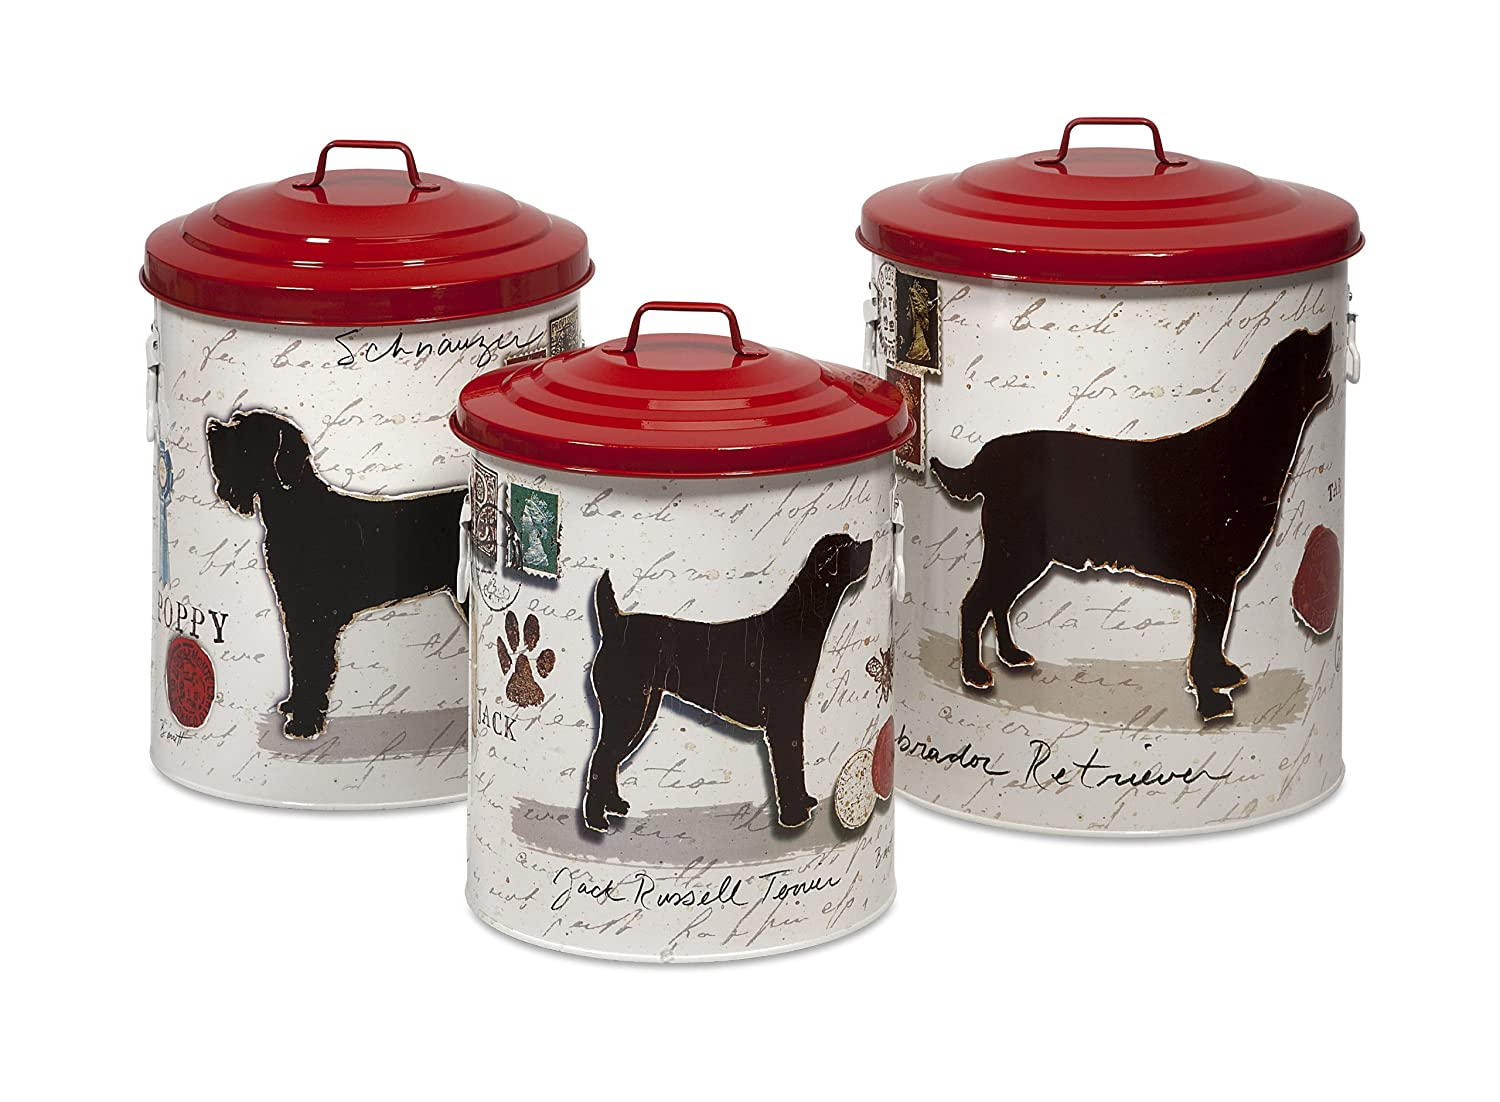 Looking for stylish ways to store your pup's snacks and kibble? Check out our guide to picking out Decorative Dog Food Canisters!